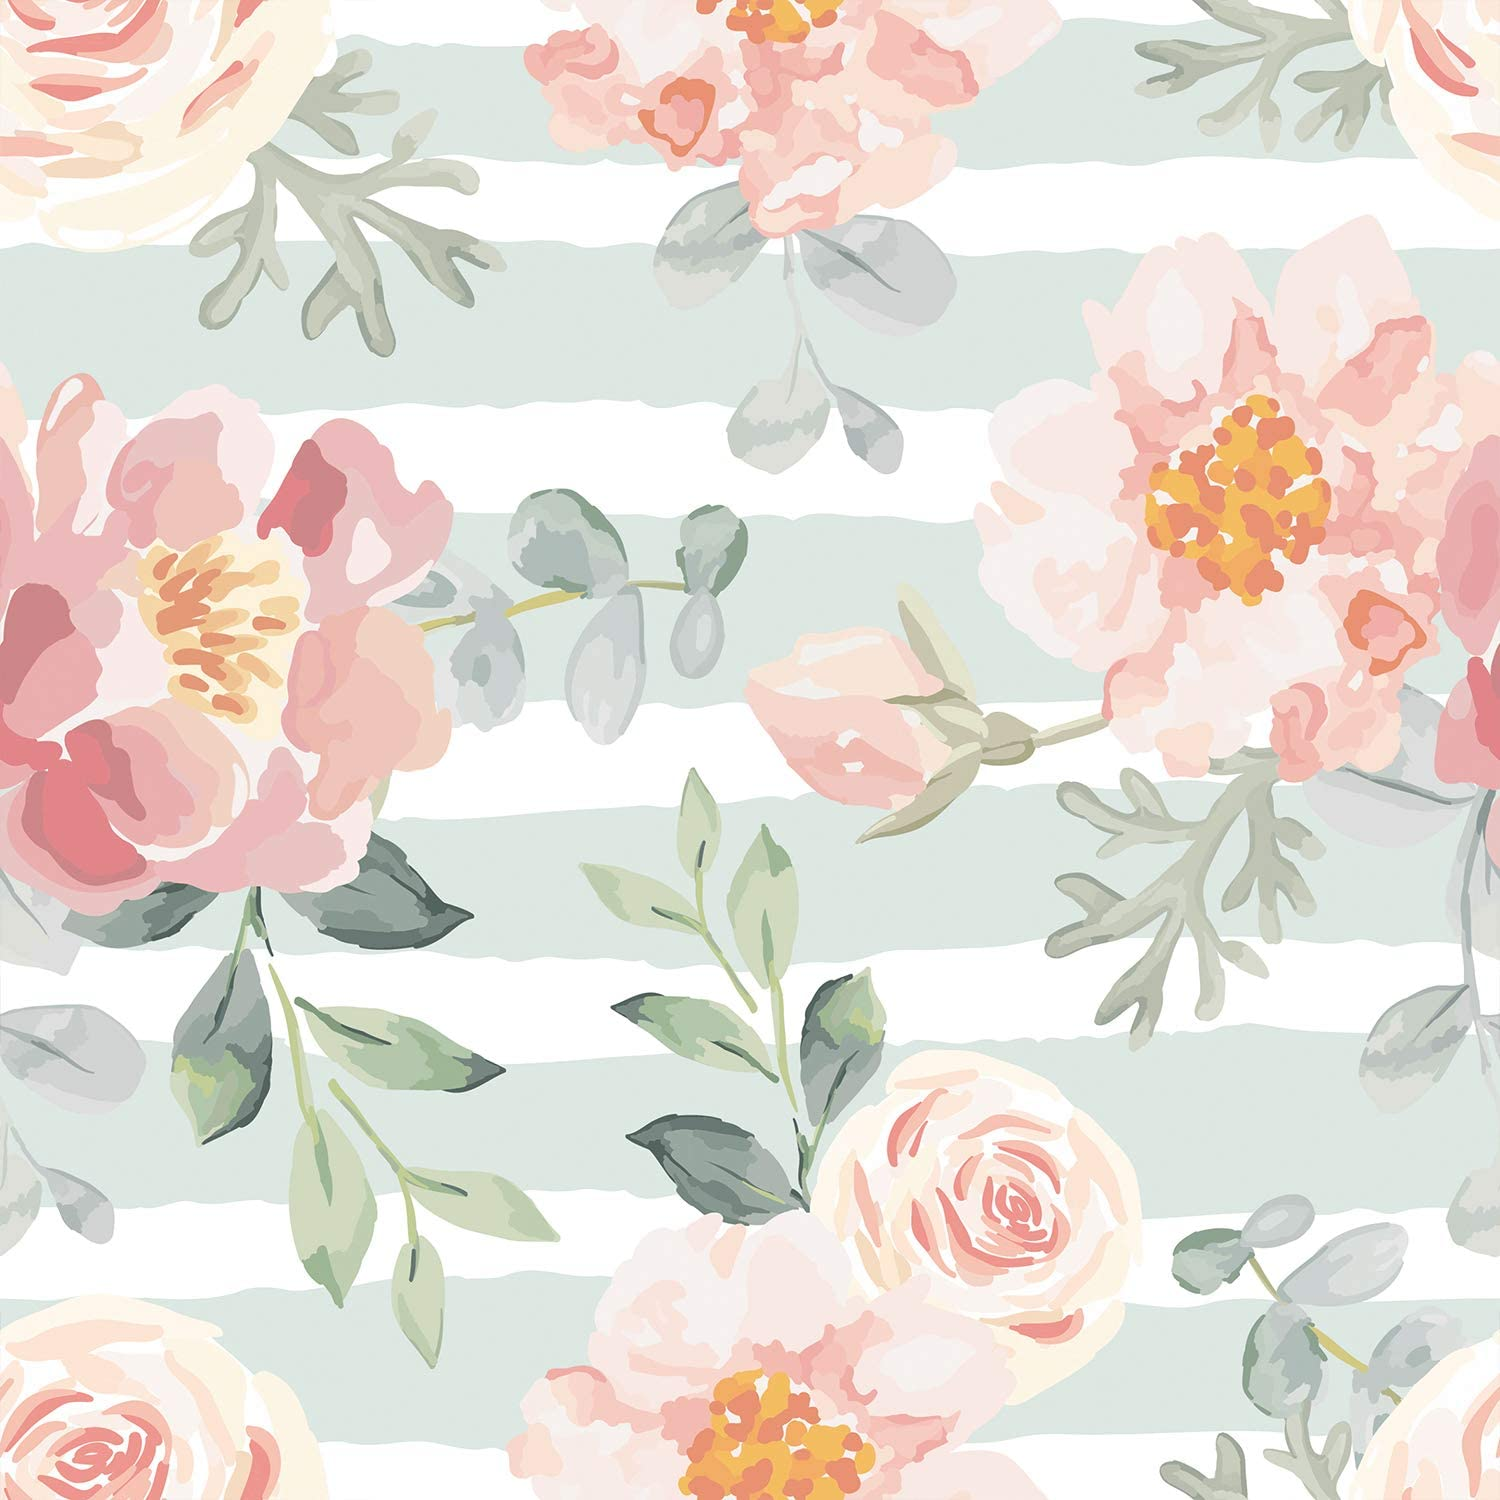 Amazing Wall Summer Water Color Floral Pattern Peel And Stick Self Adhesive Wallpaper 15 7x198inch Amazon Com